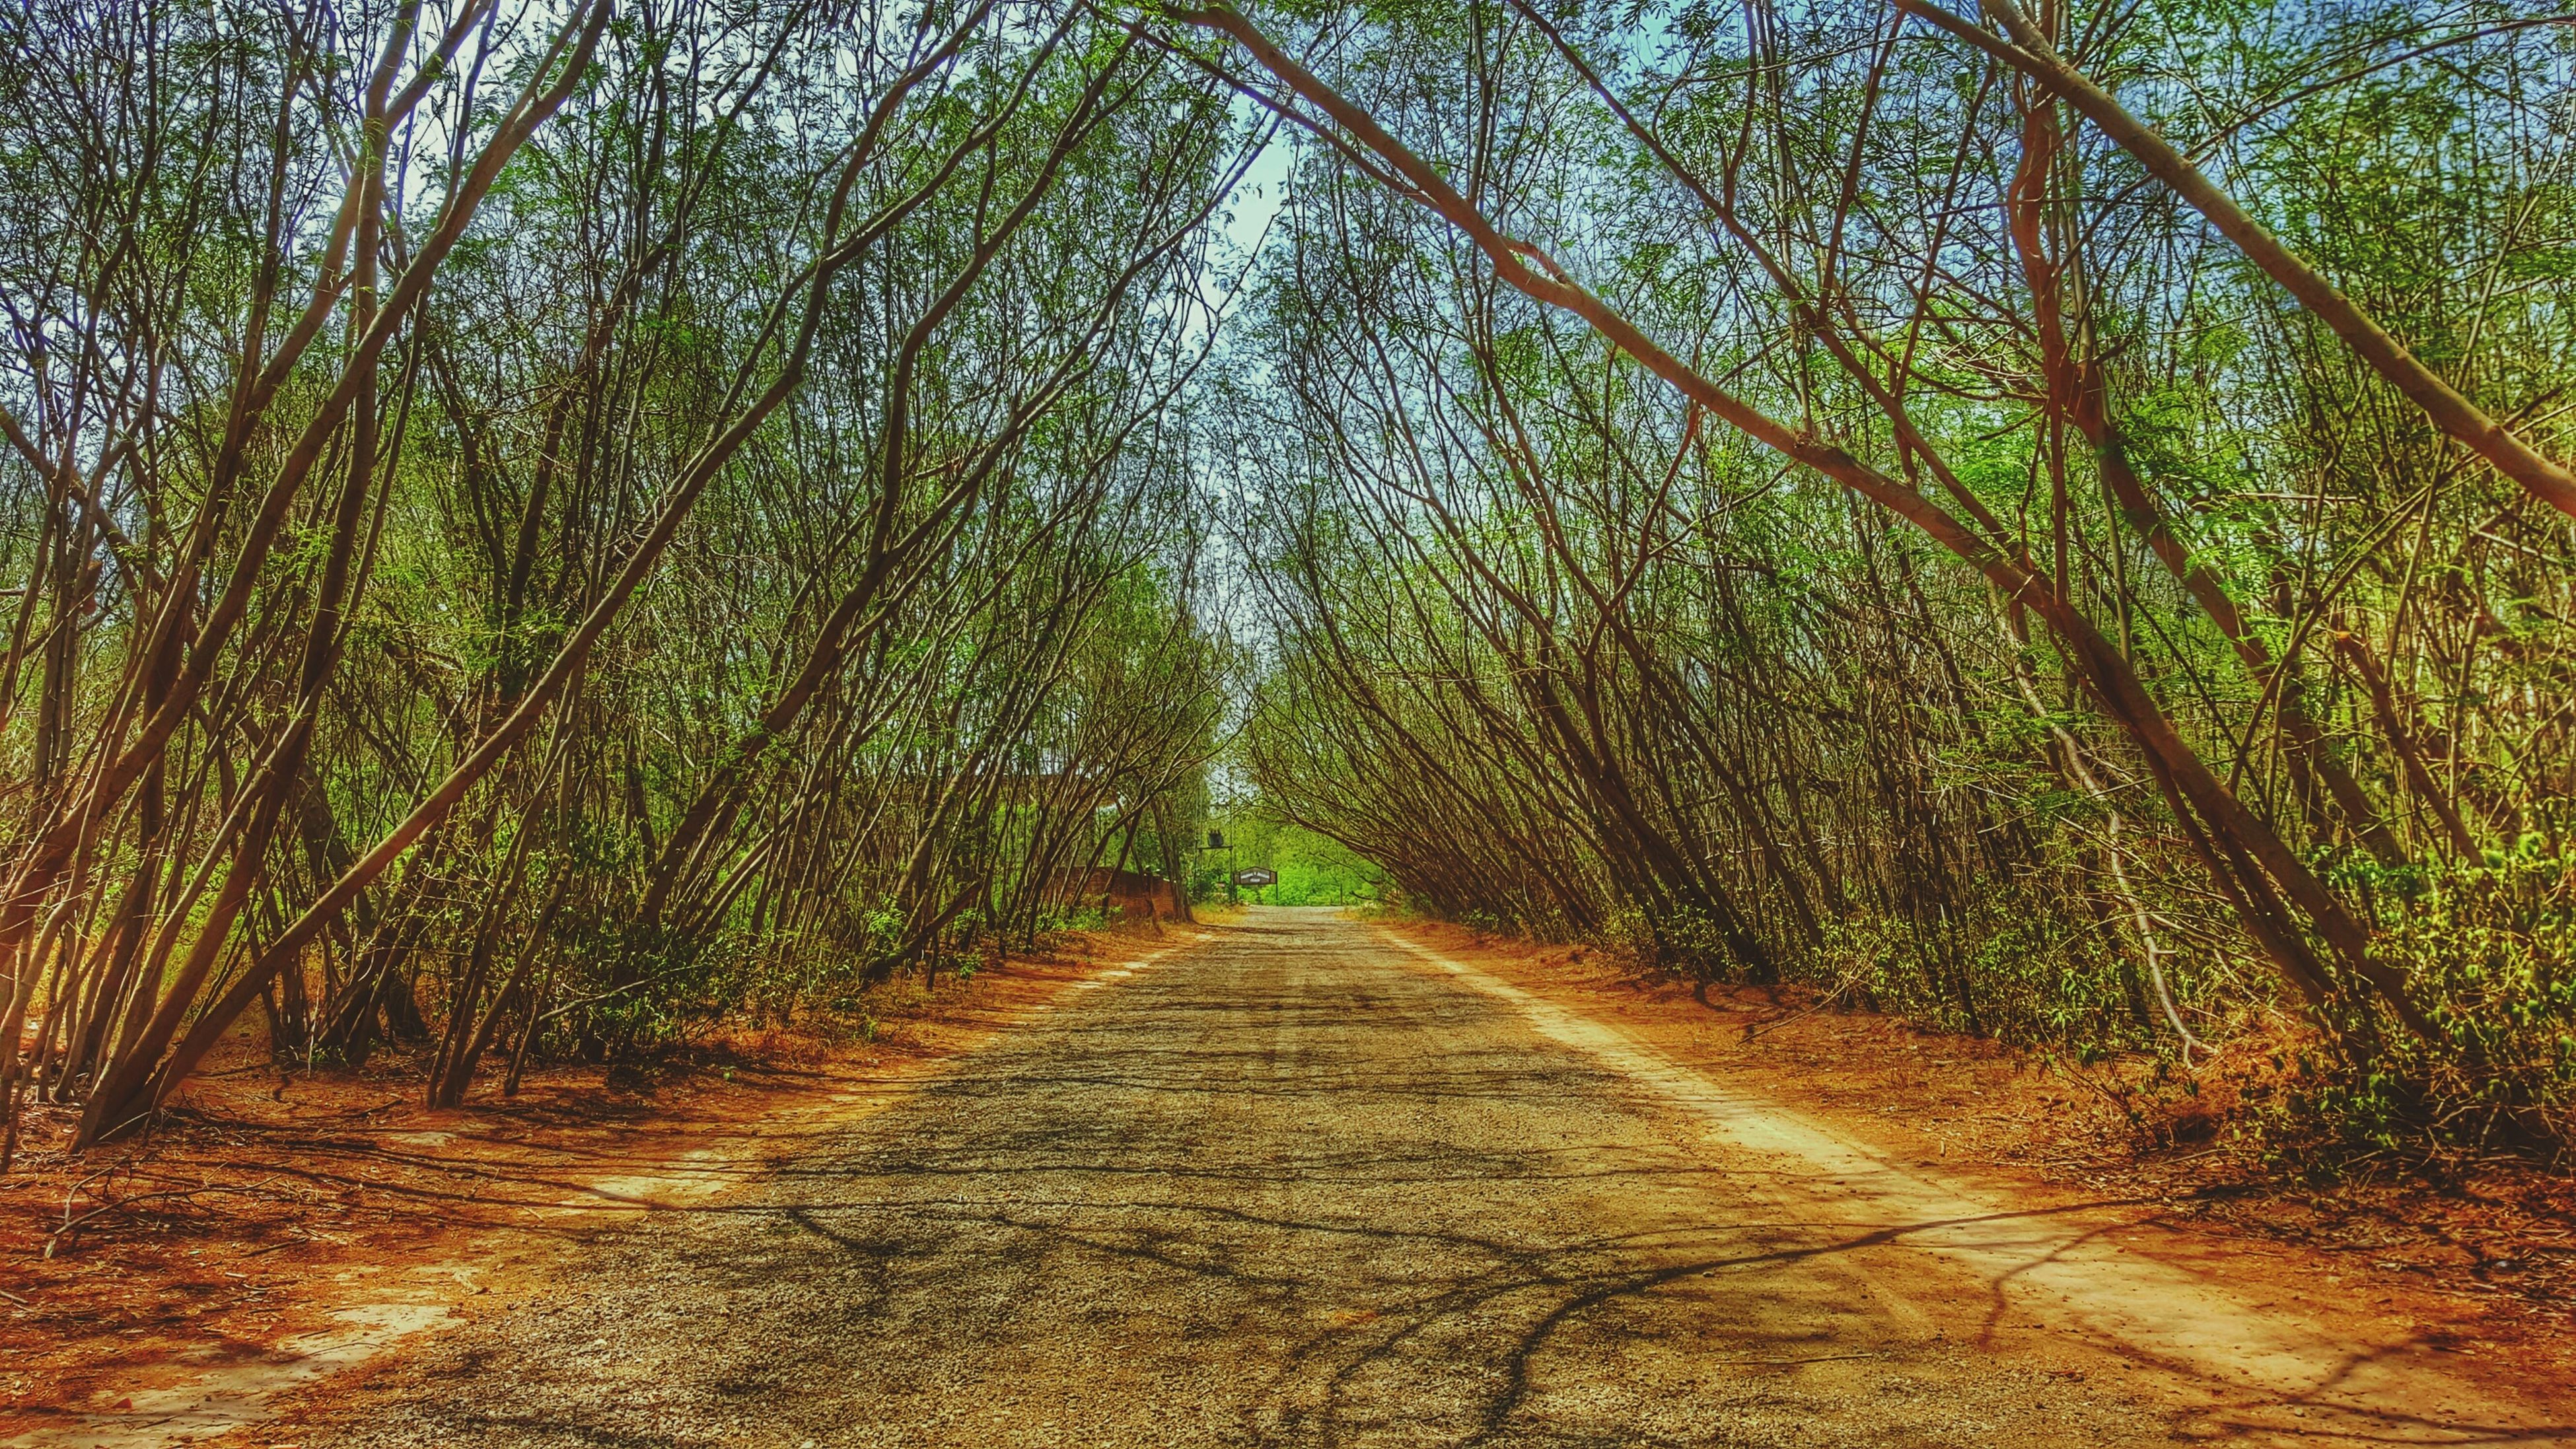 the way forward, tree, diminishing perspective, vanishing point, tranquility, growth, footpath, nature, tranquil scene, dirt road, forest, pathway, beauty in nature, green color, narrow, branch, transportation, road, treelined, walkway